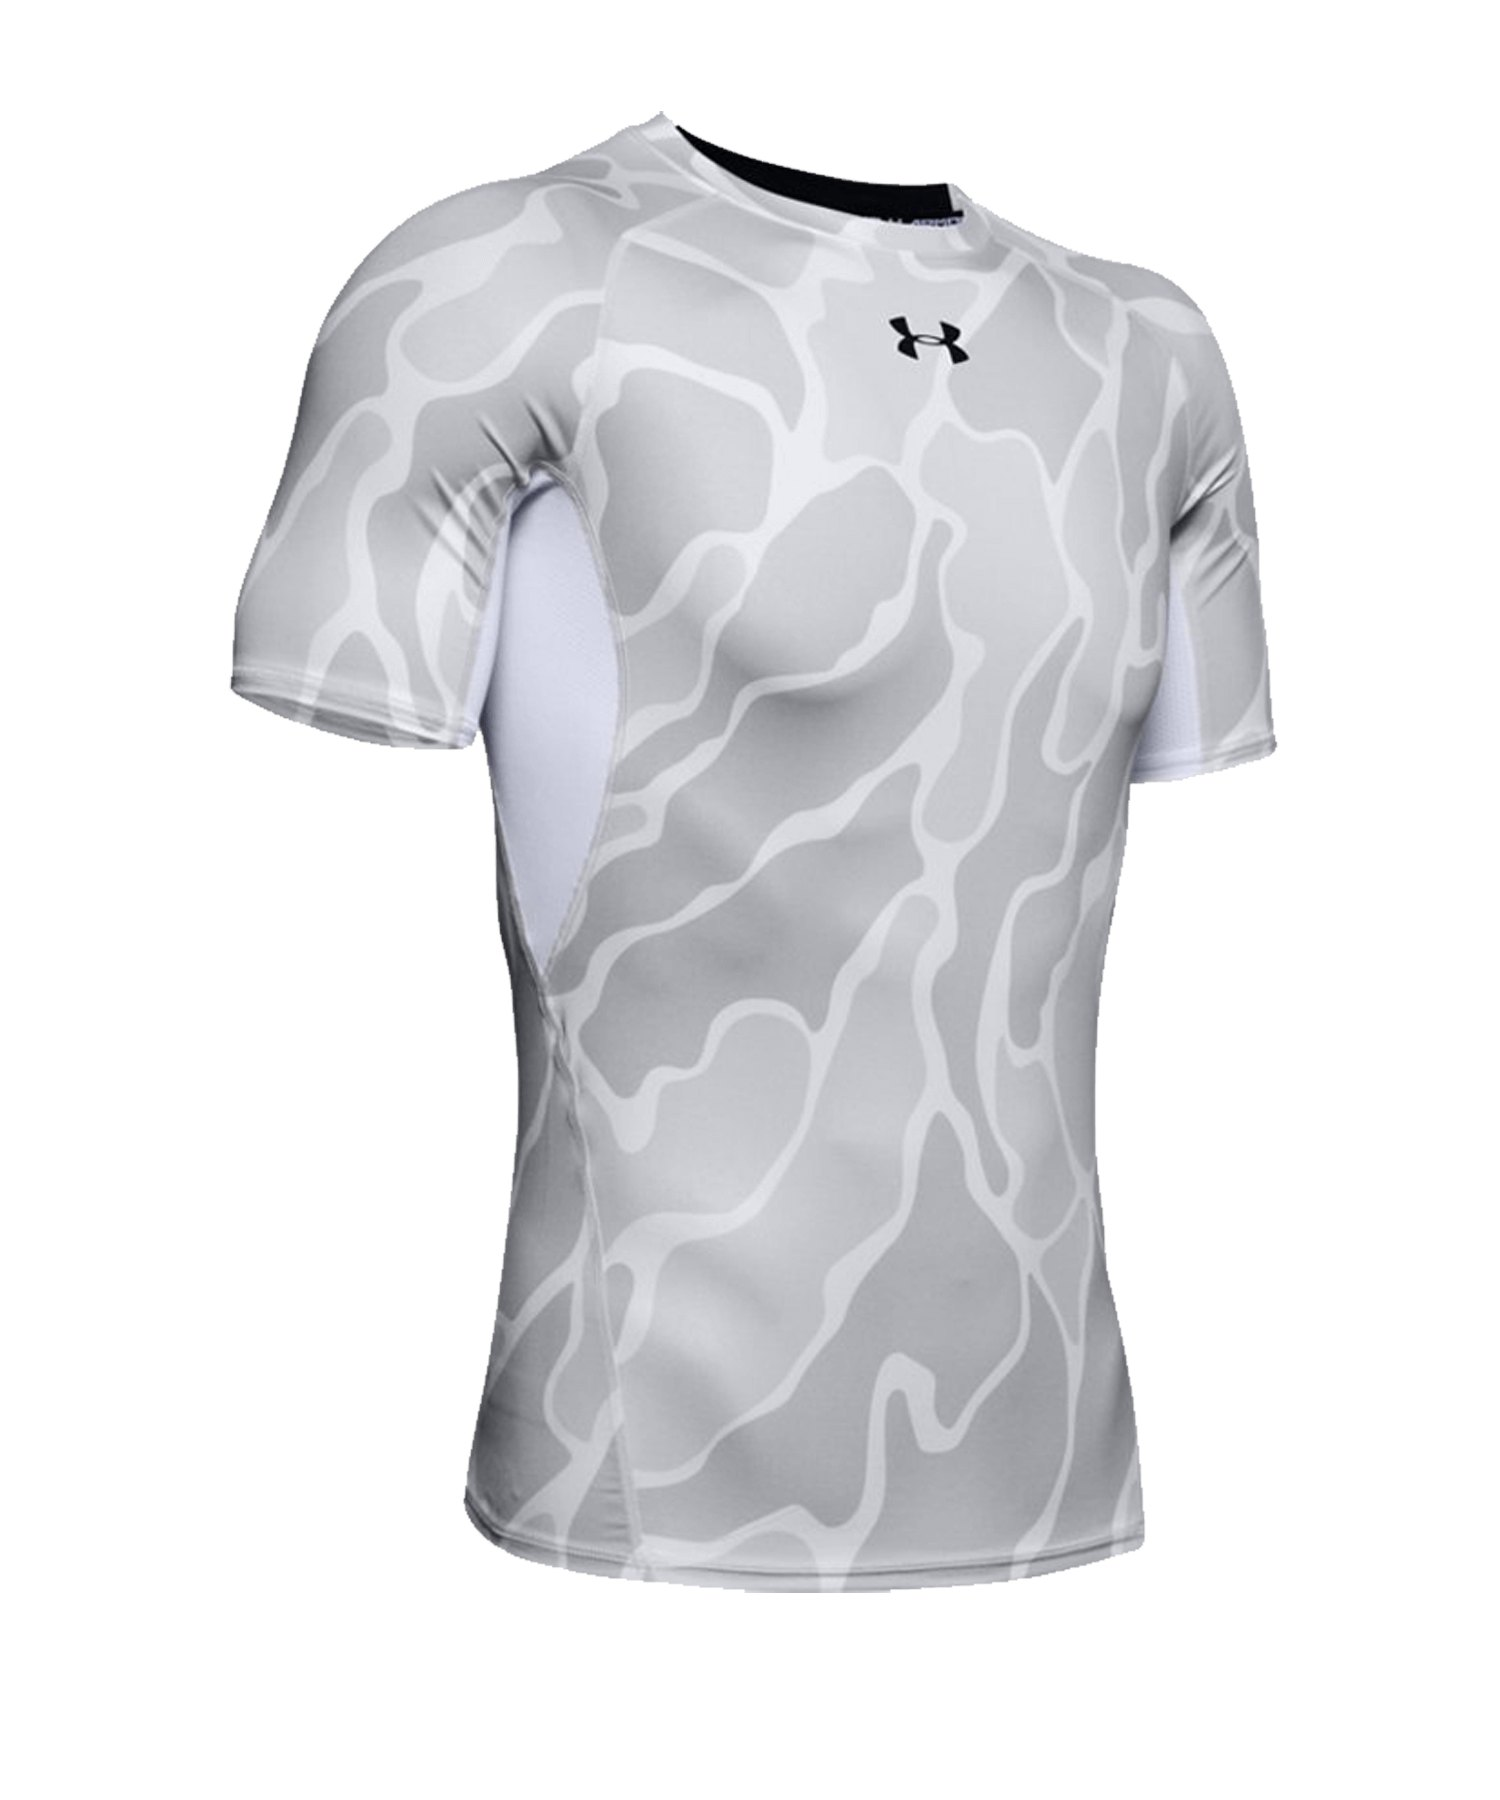 Under Armour Heatgear Print T-Shirt Weiss F101 - weiss